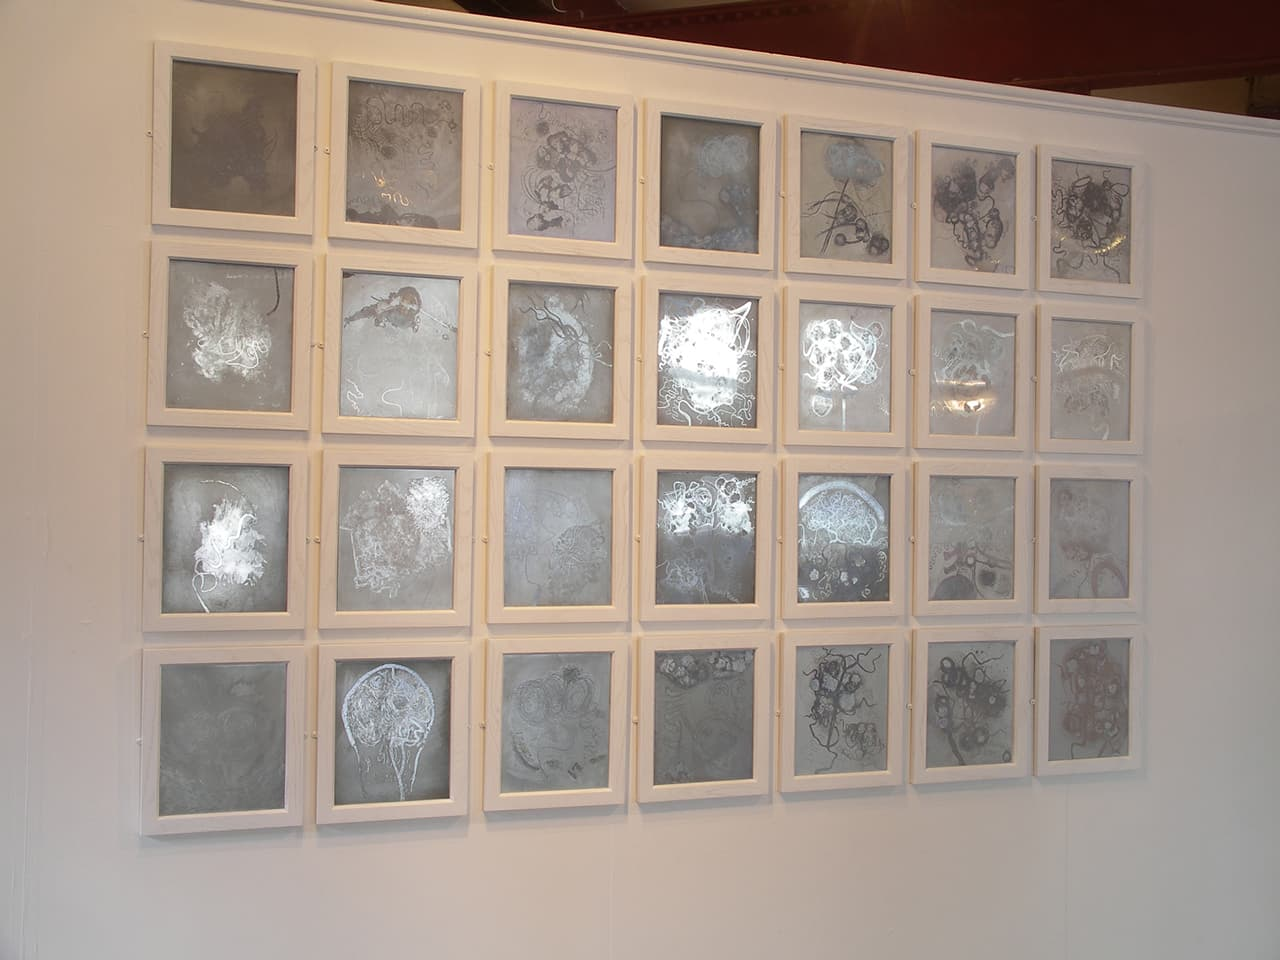 Mirror <strong>Brainscapes</strong>. Installation of 28 zinc etching plates, Susan Aldworth, 2002. Photograph at Whitechapel Gallery, London by Brian Campbell.